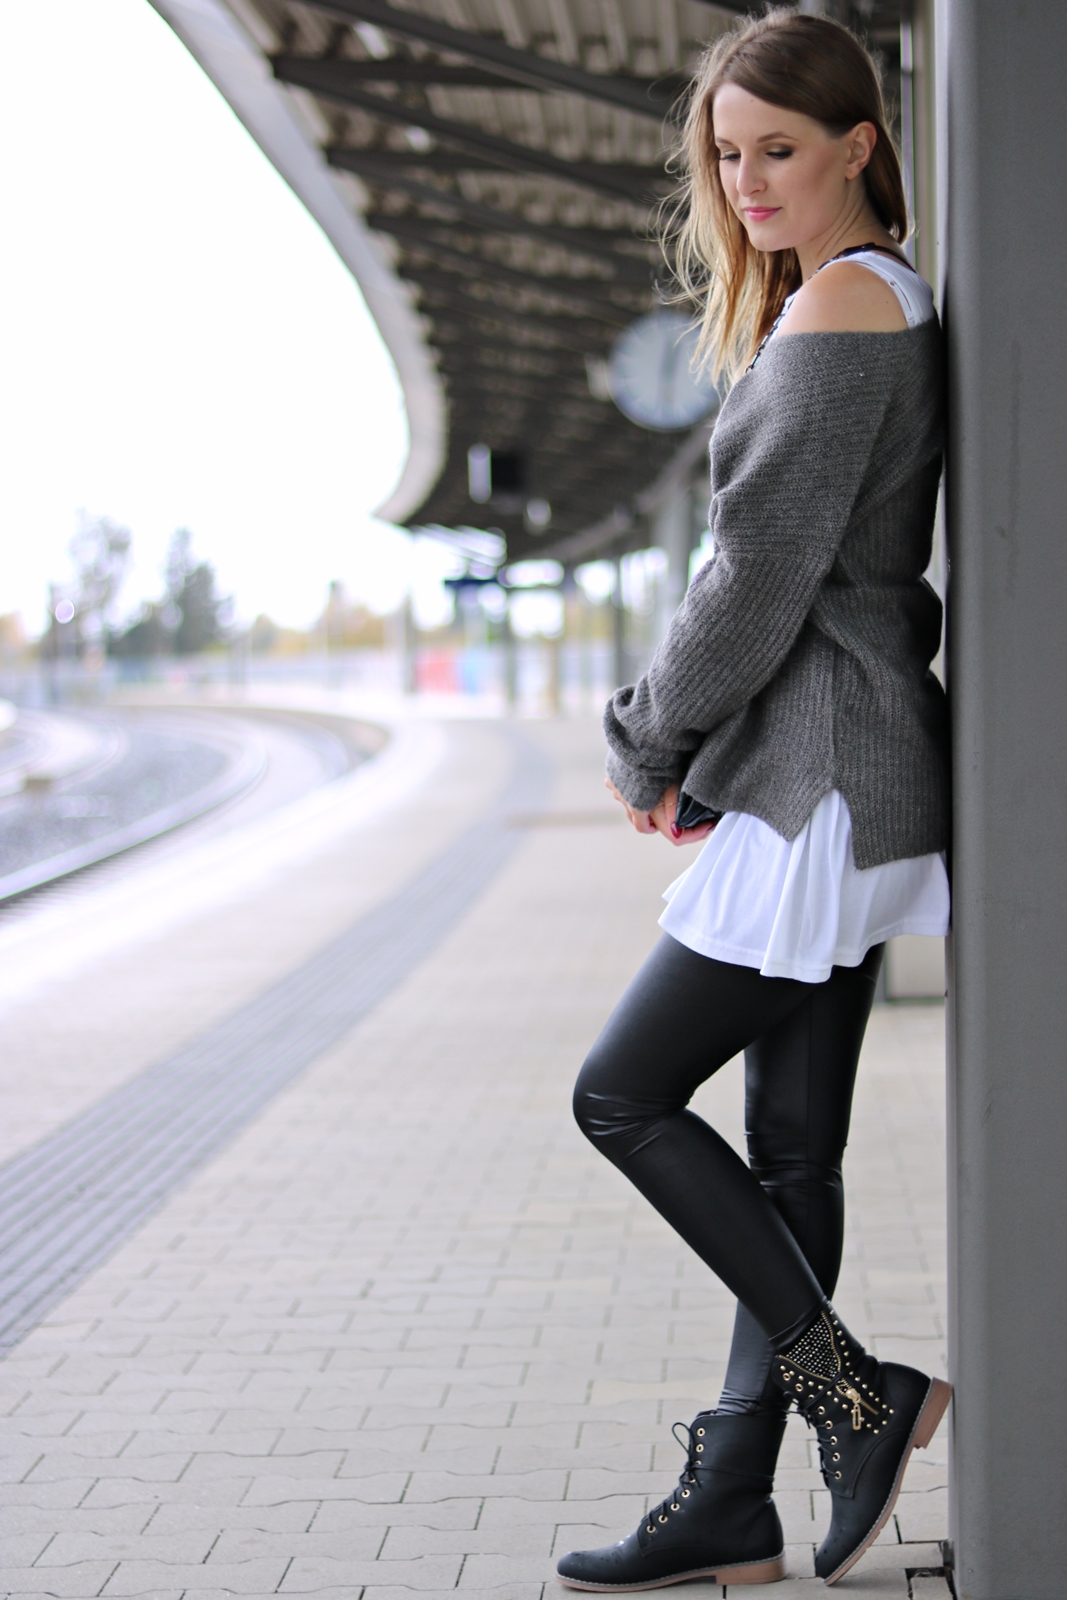 Lederleggings kombinieren - so stylst du diesen Herbst Trend - Modetrend - Herbst Kombination - Leggings Sweater Kleid - Layering Look - Cross Body Bag - Boots - Herbst Look - Fall Outfit - Style - Streetstyle - Mode - Fashionladyloves by Tamara Wagner - Mode Blog - Fashionblog - aus Graz Österreich